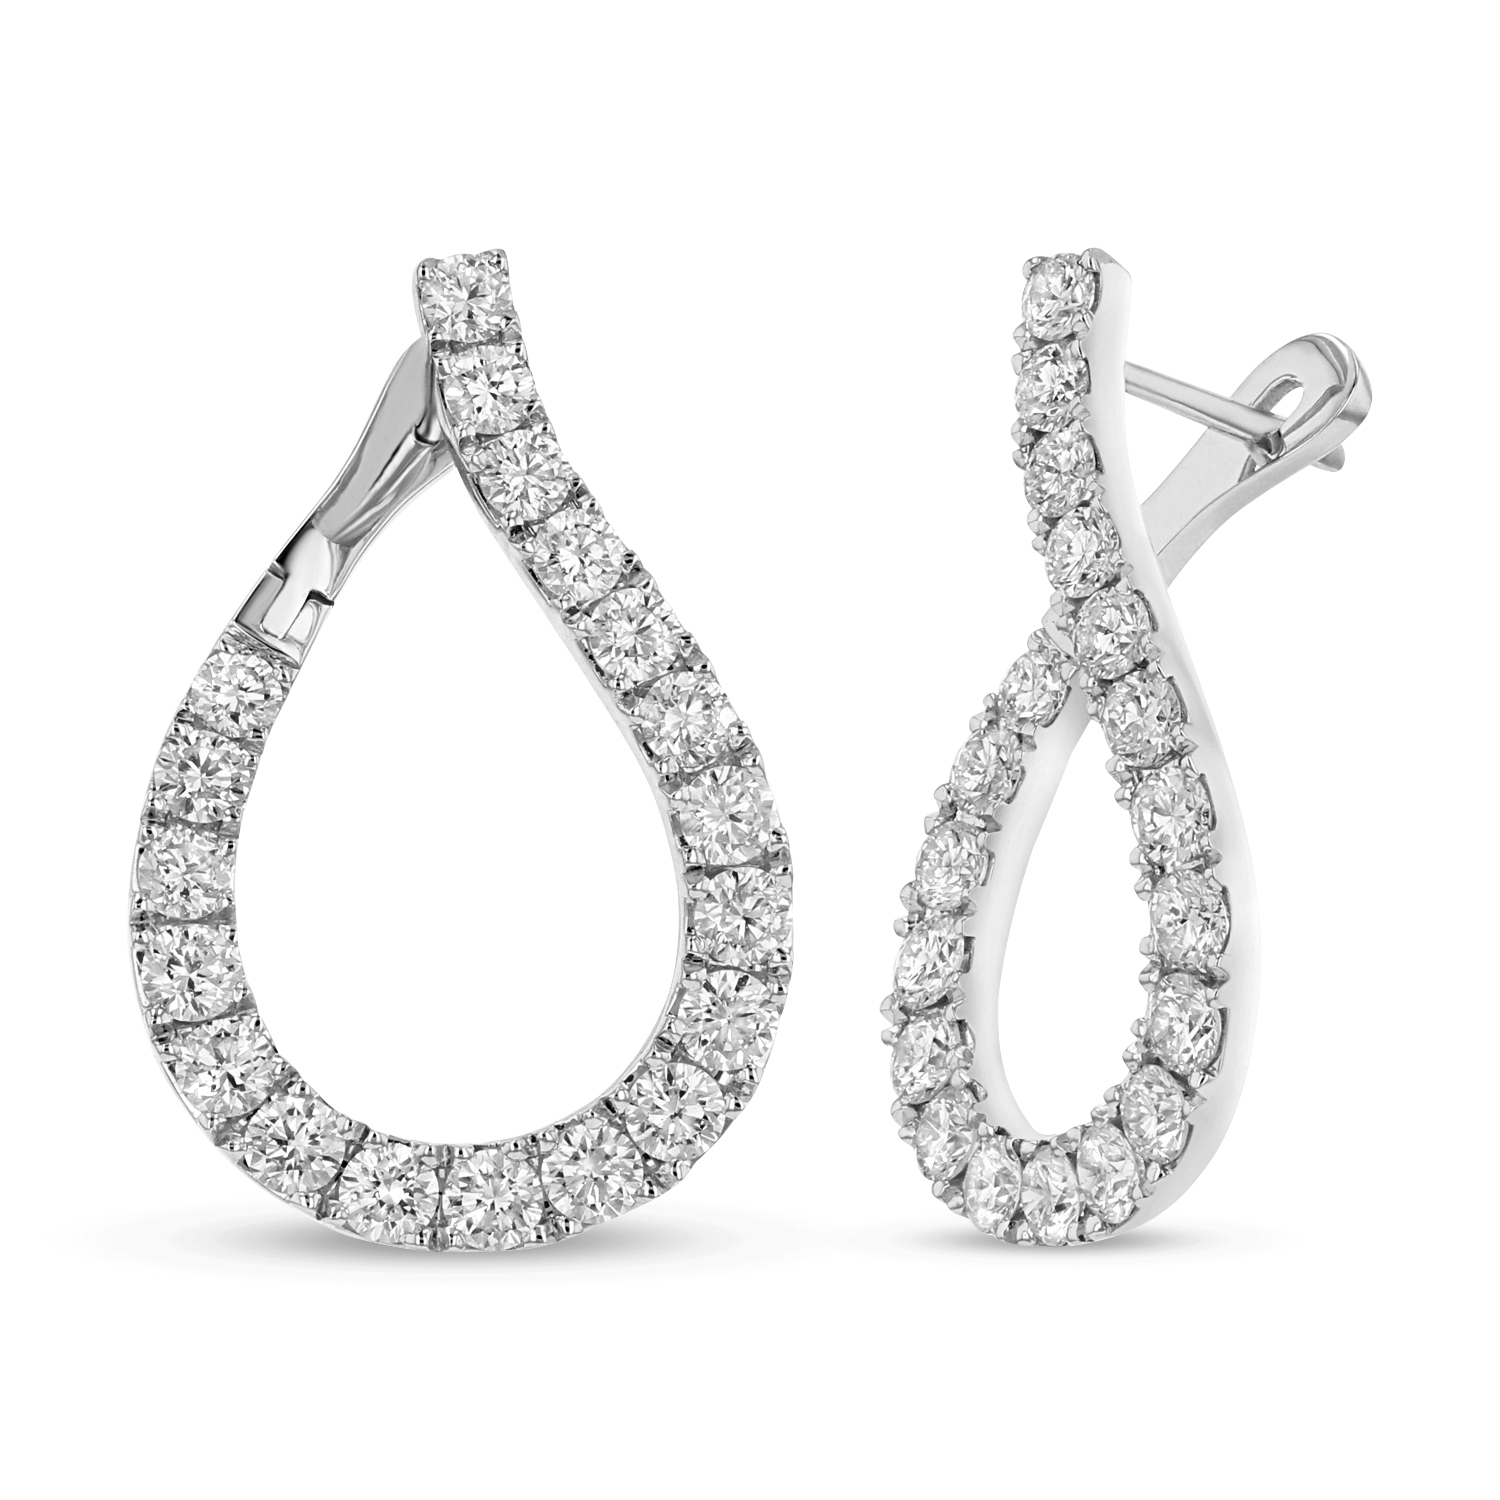 View 1.78ctw Diamond Earrings in 18K White Gold